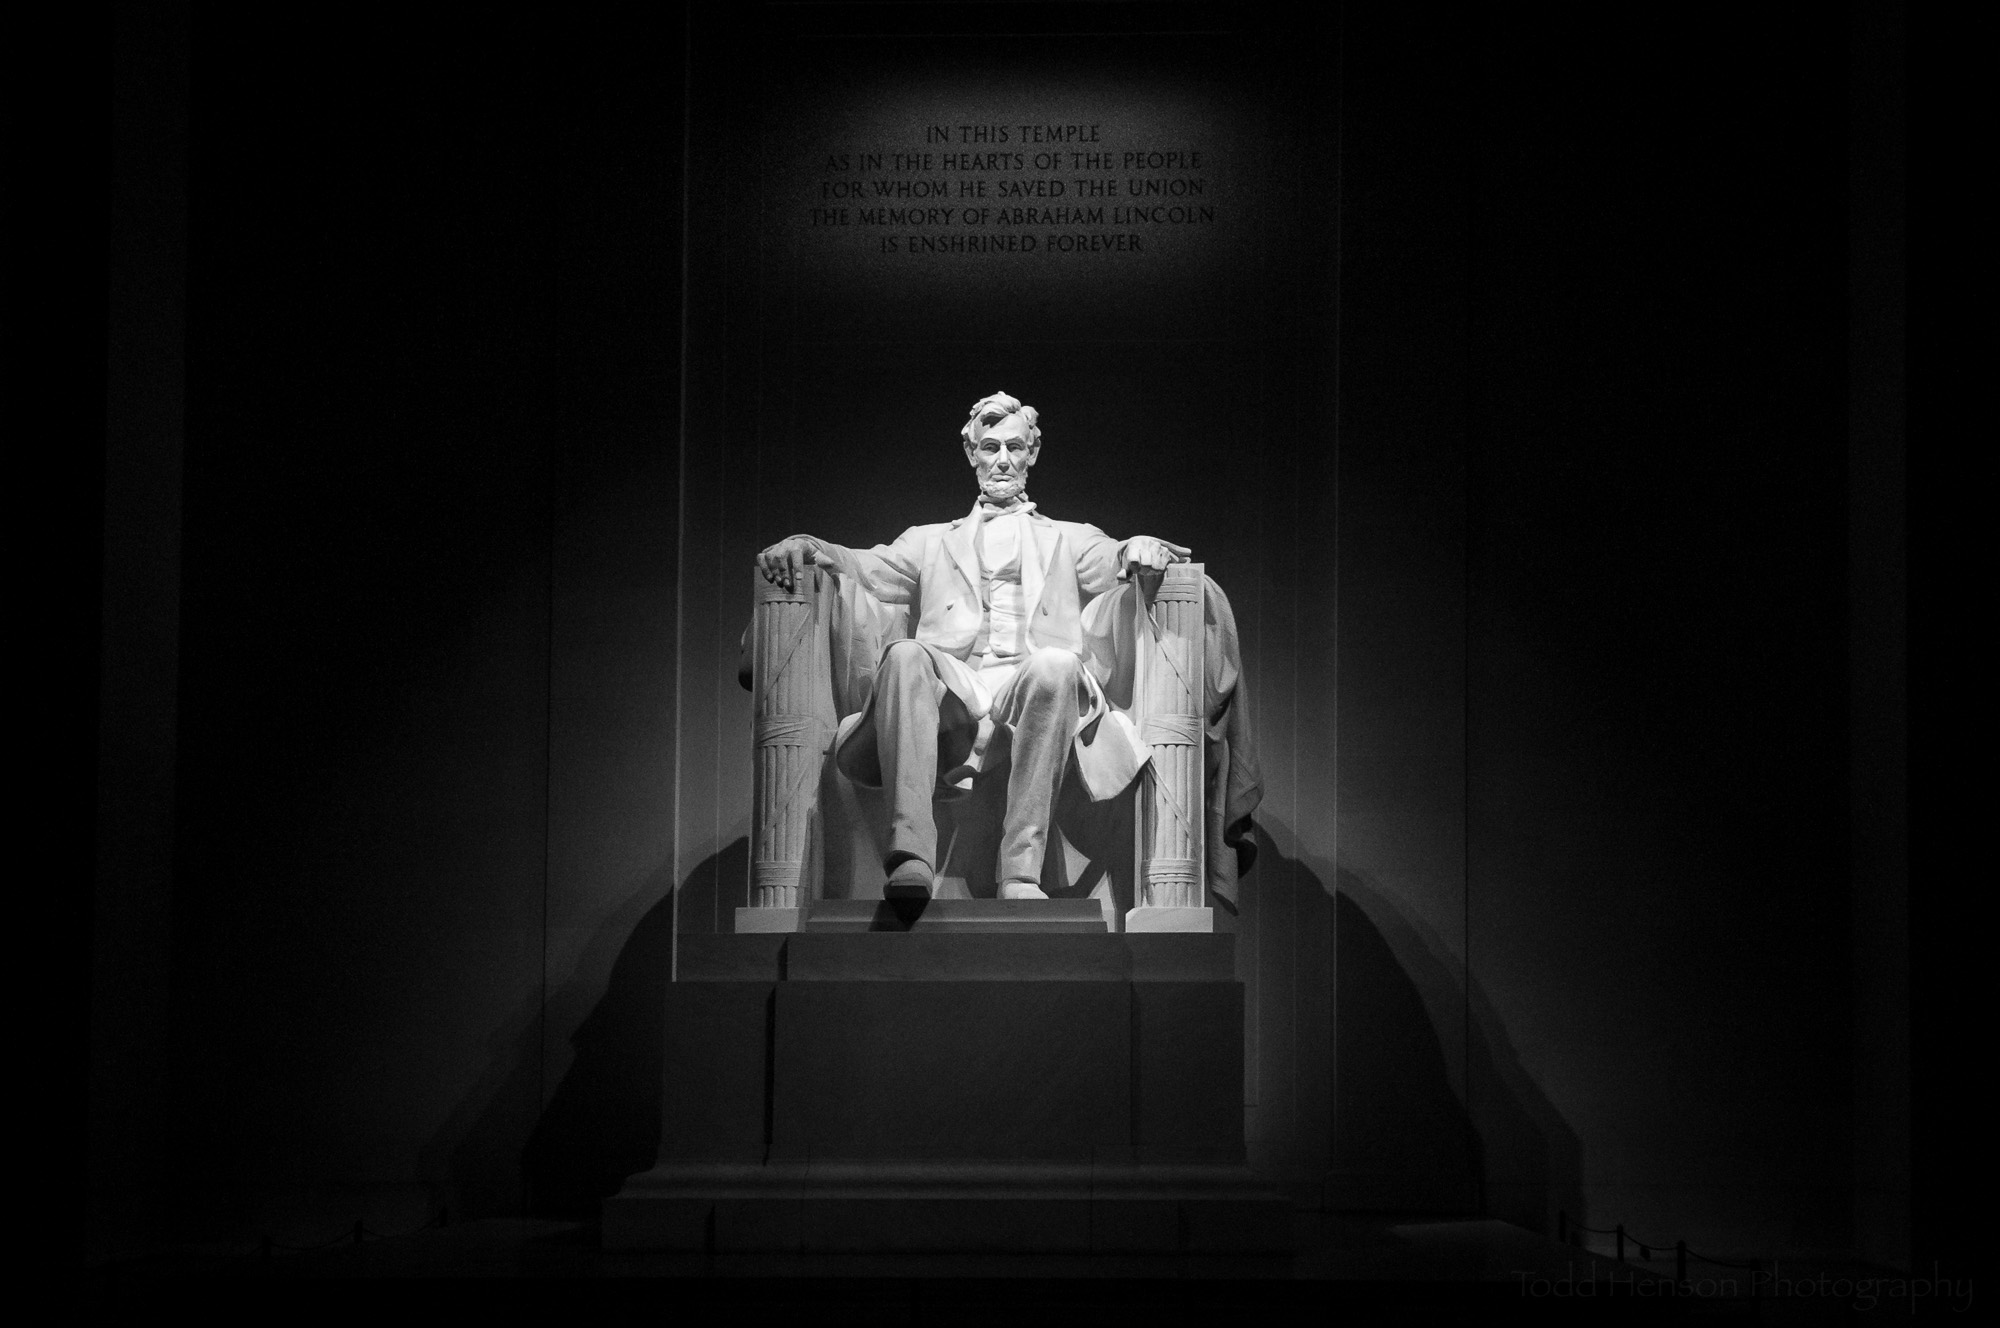 Black & white photo of the statue of Abraham Lincoln inside the Lincoln Memorial.